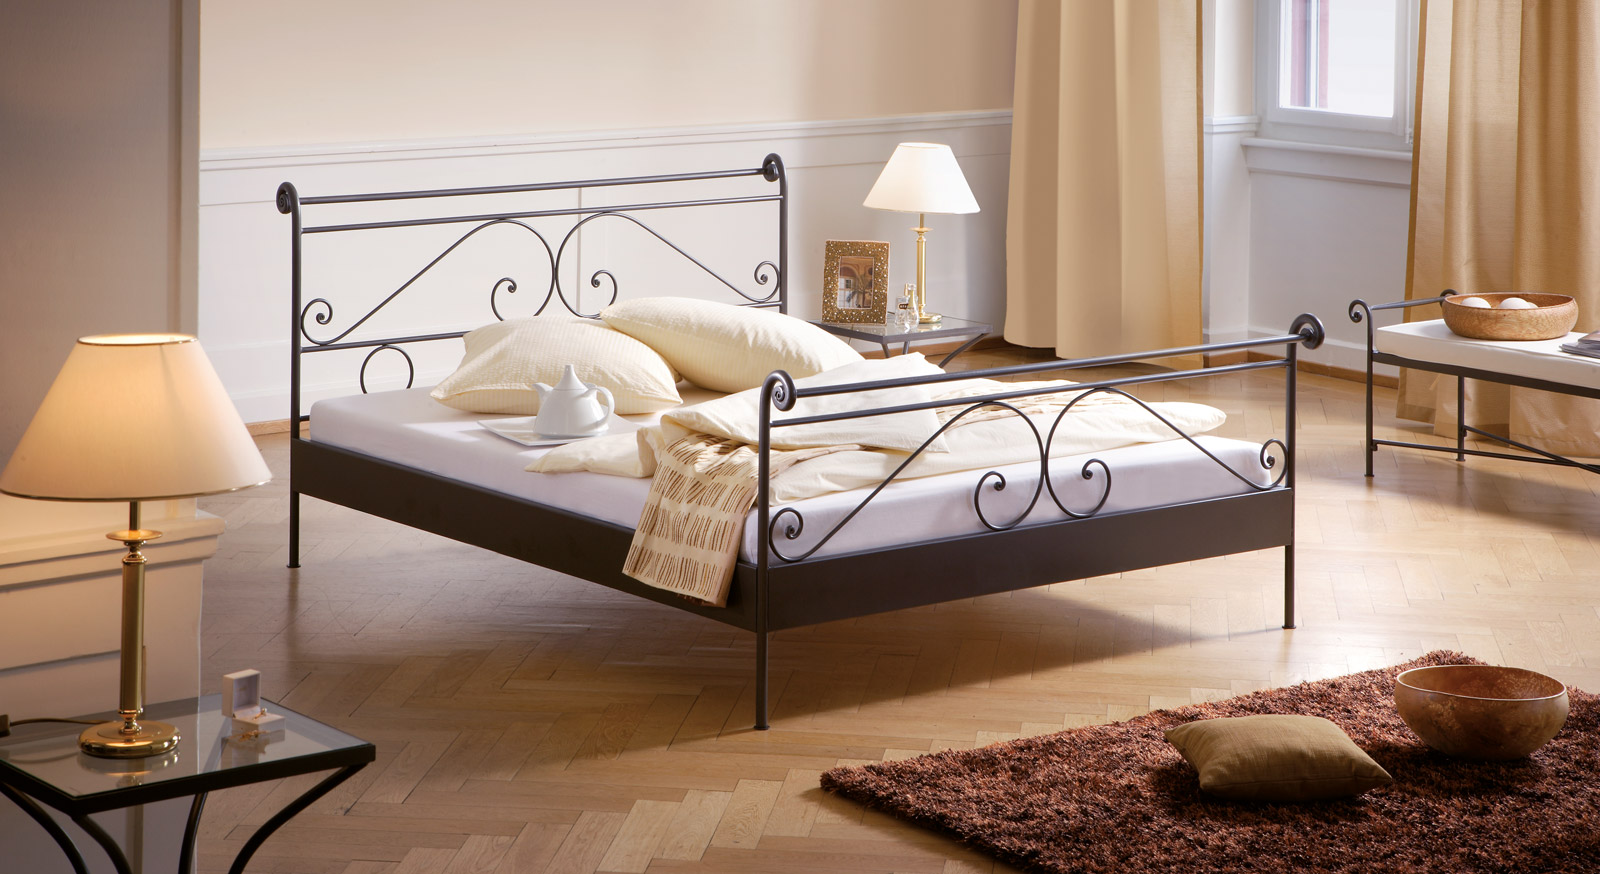 Bett Cerete Metallbett massiv